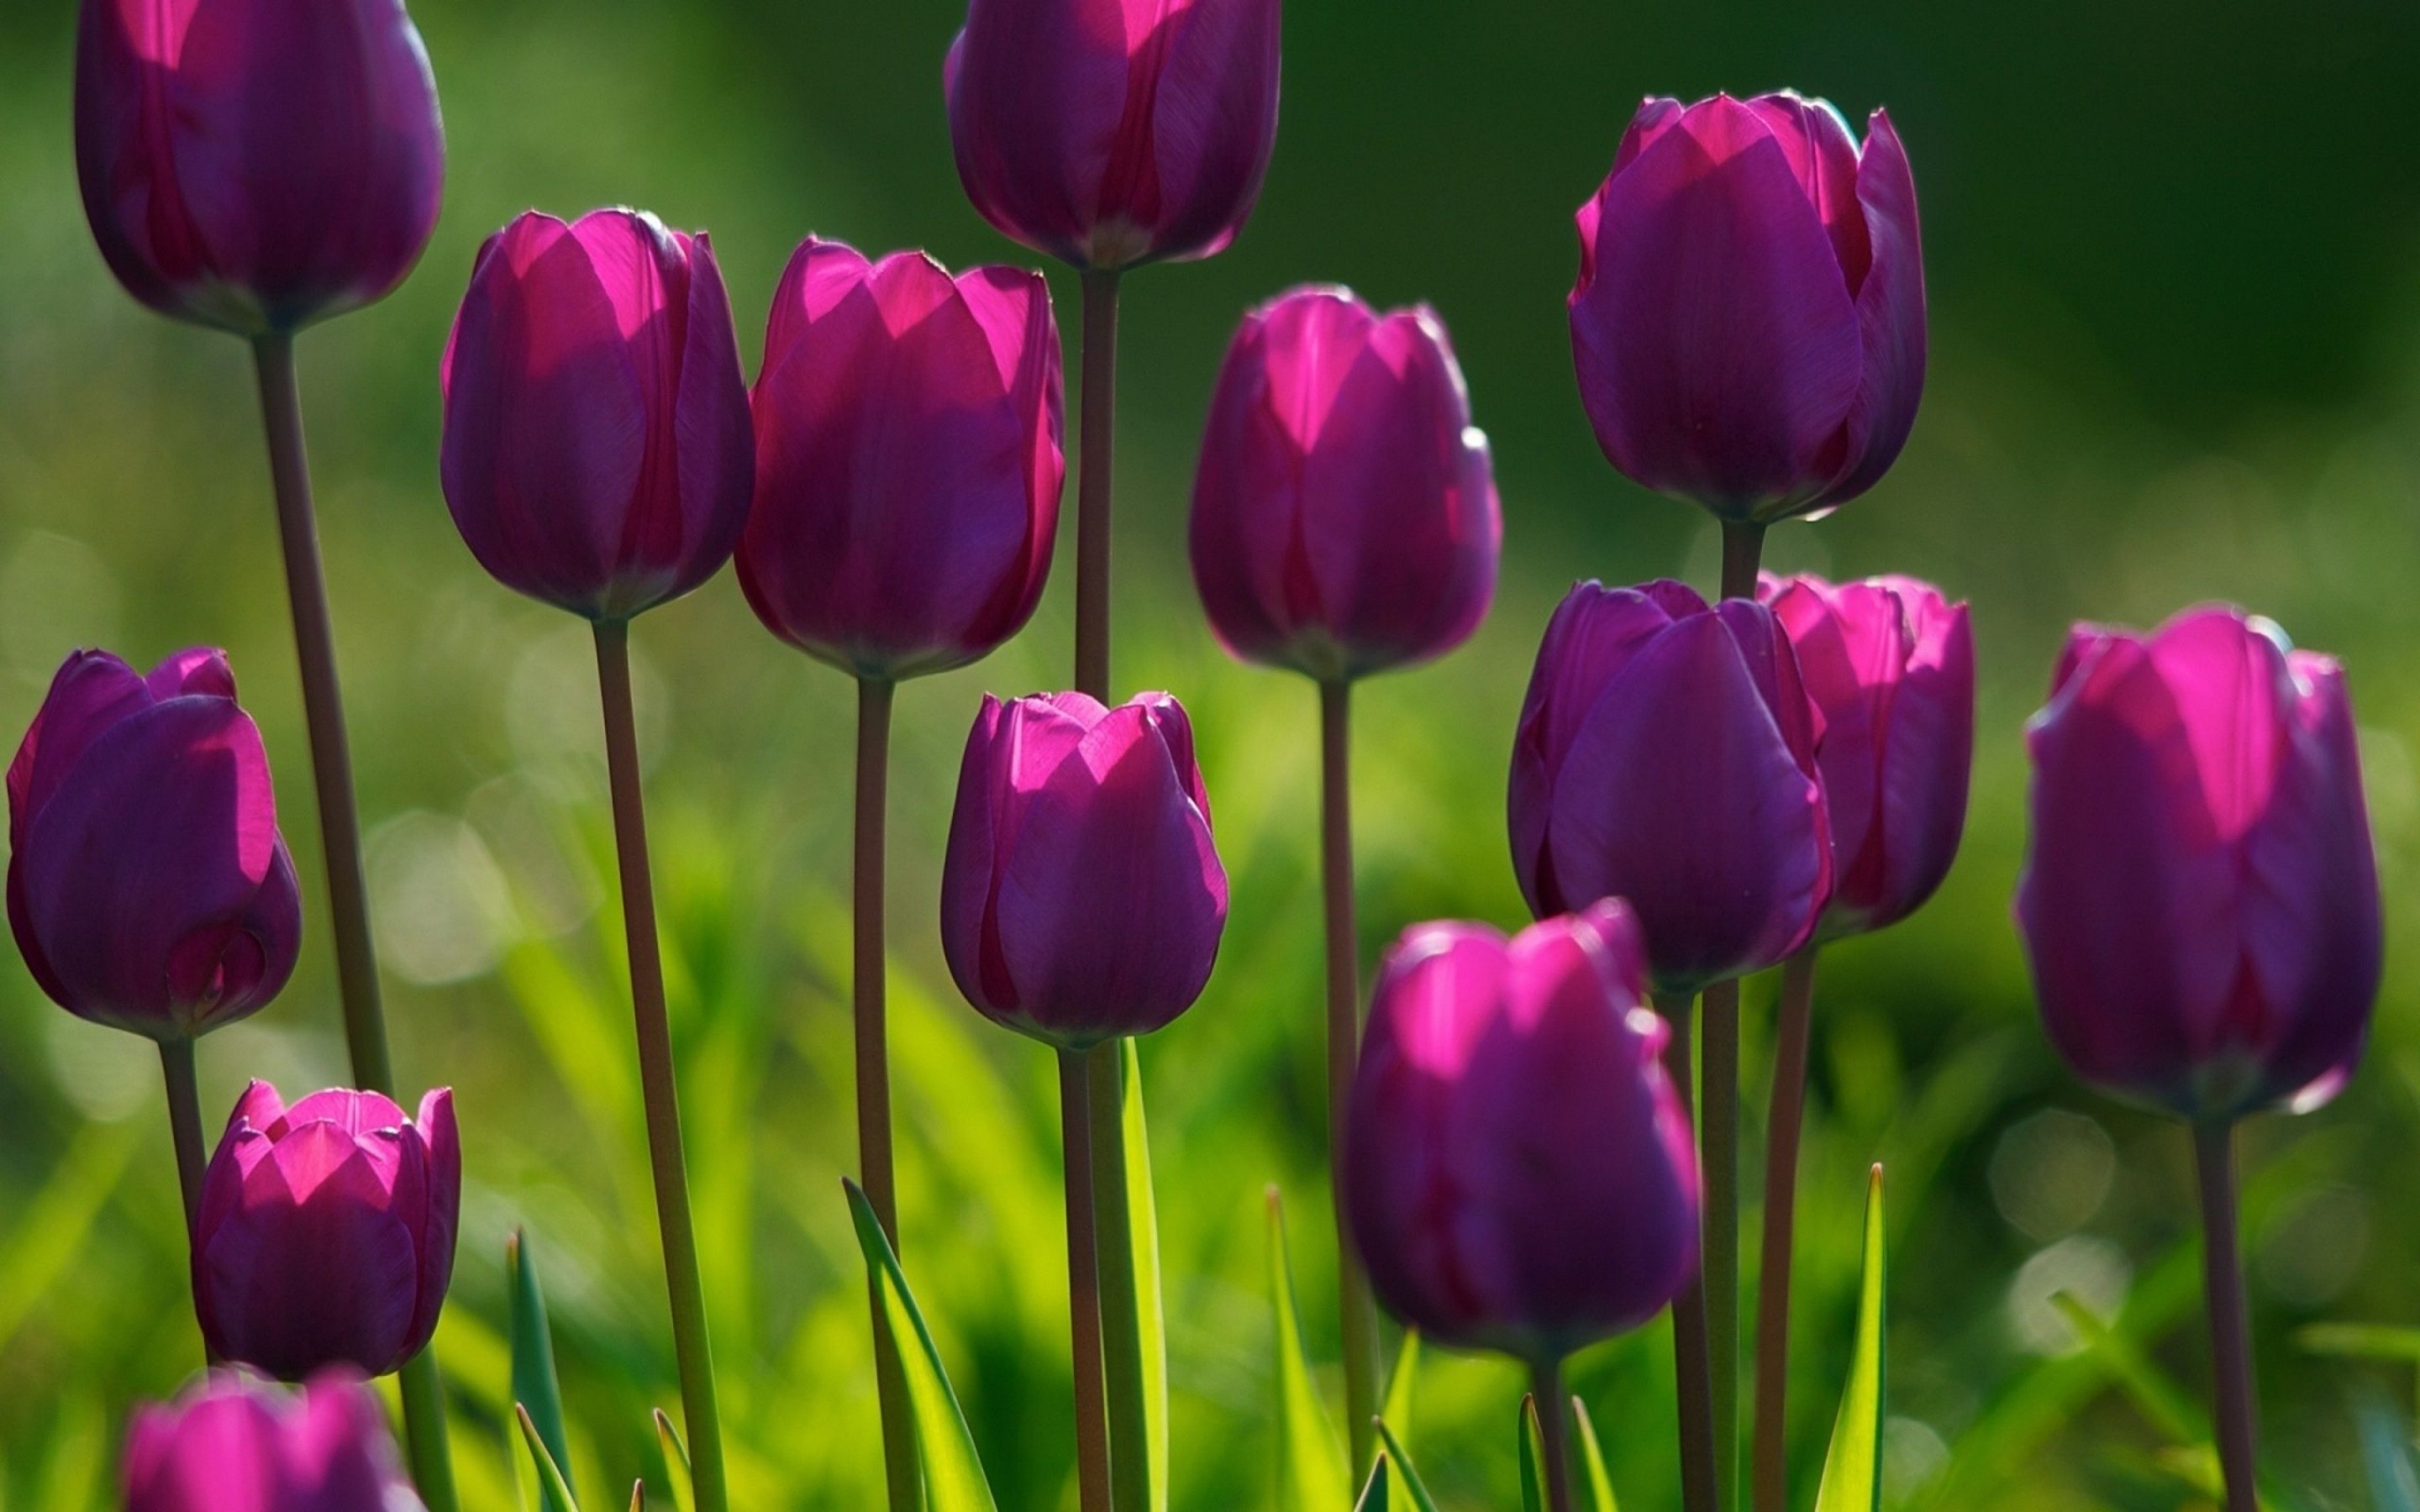 Spring Purple Flowers   Wallpaper High Definition High Quality 2880x1800